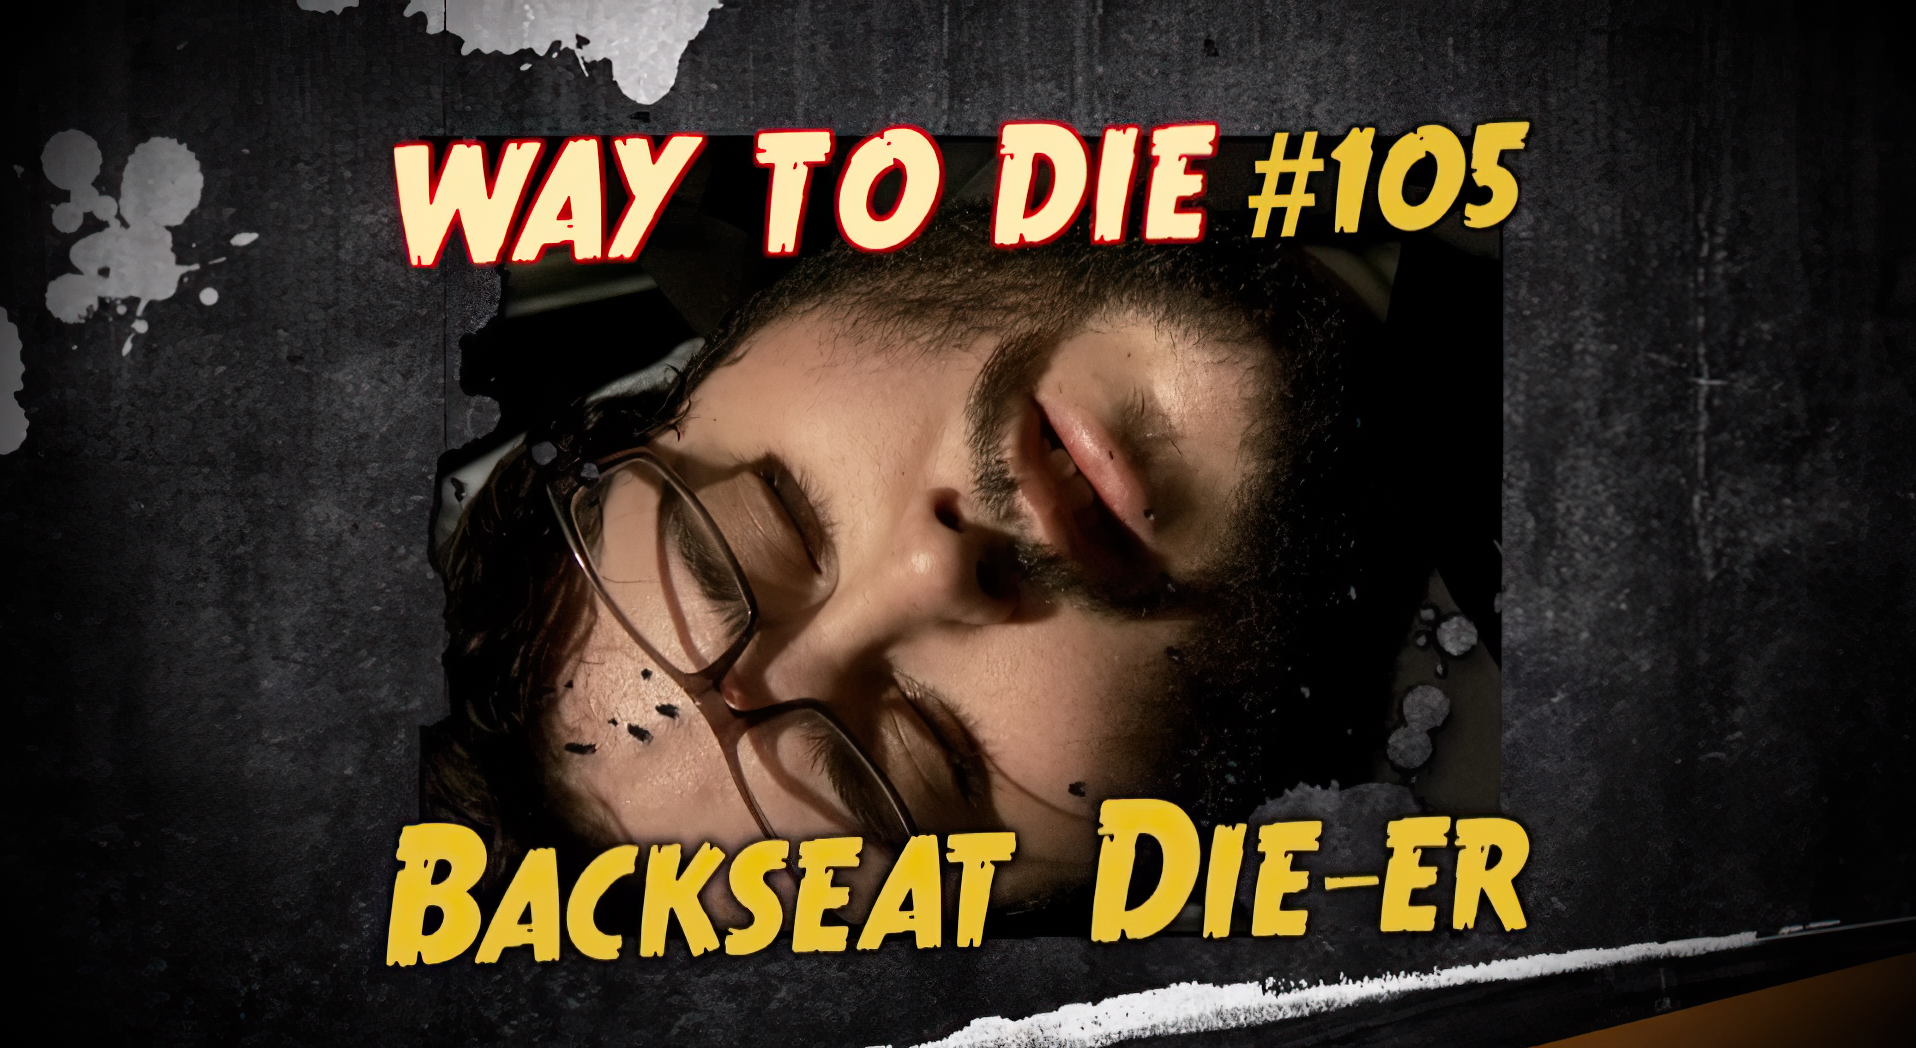 Backseat Die-er